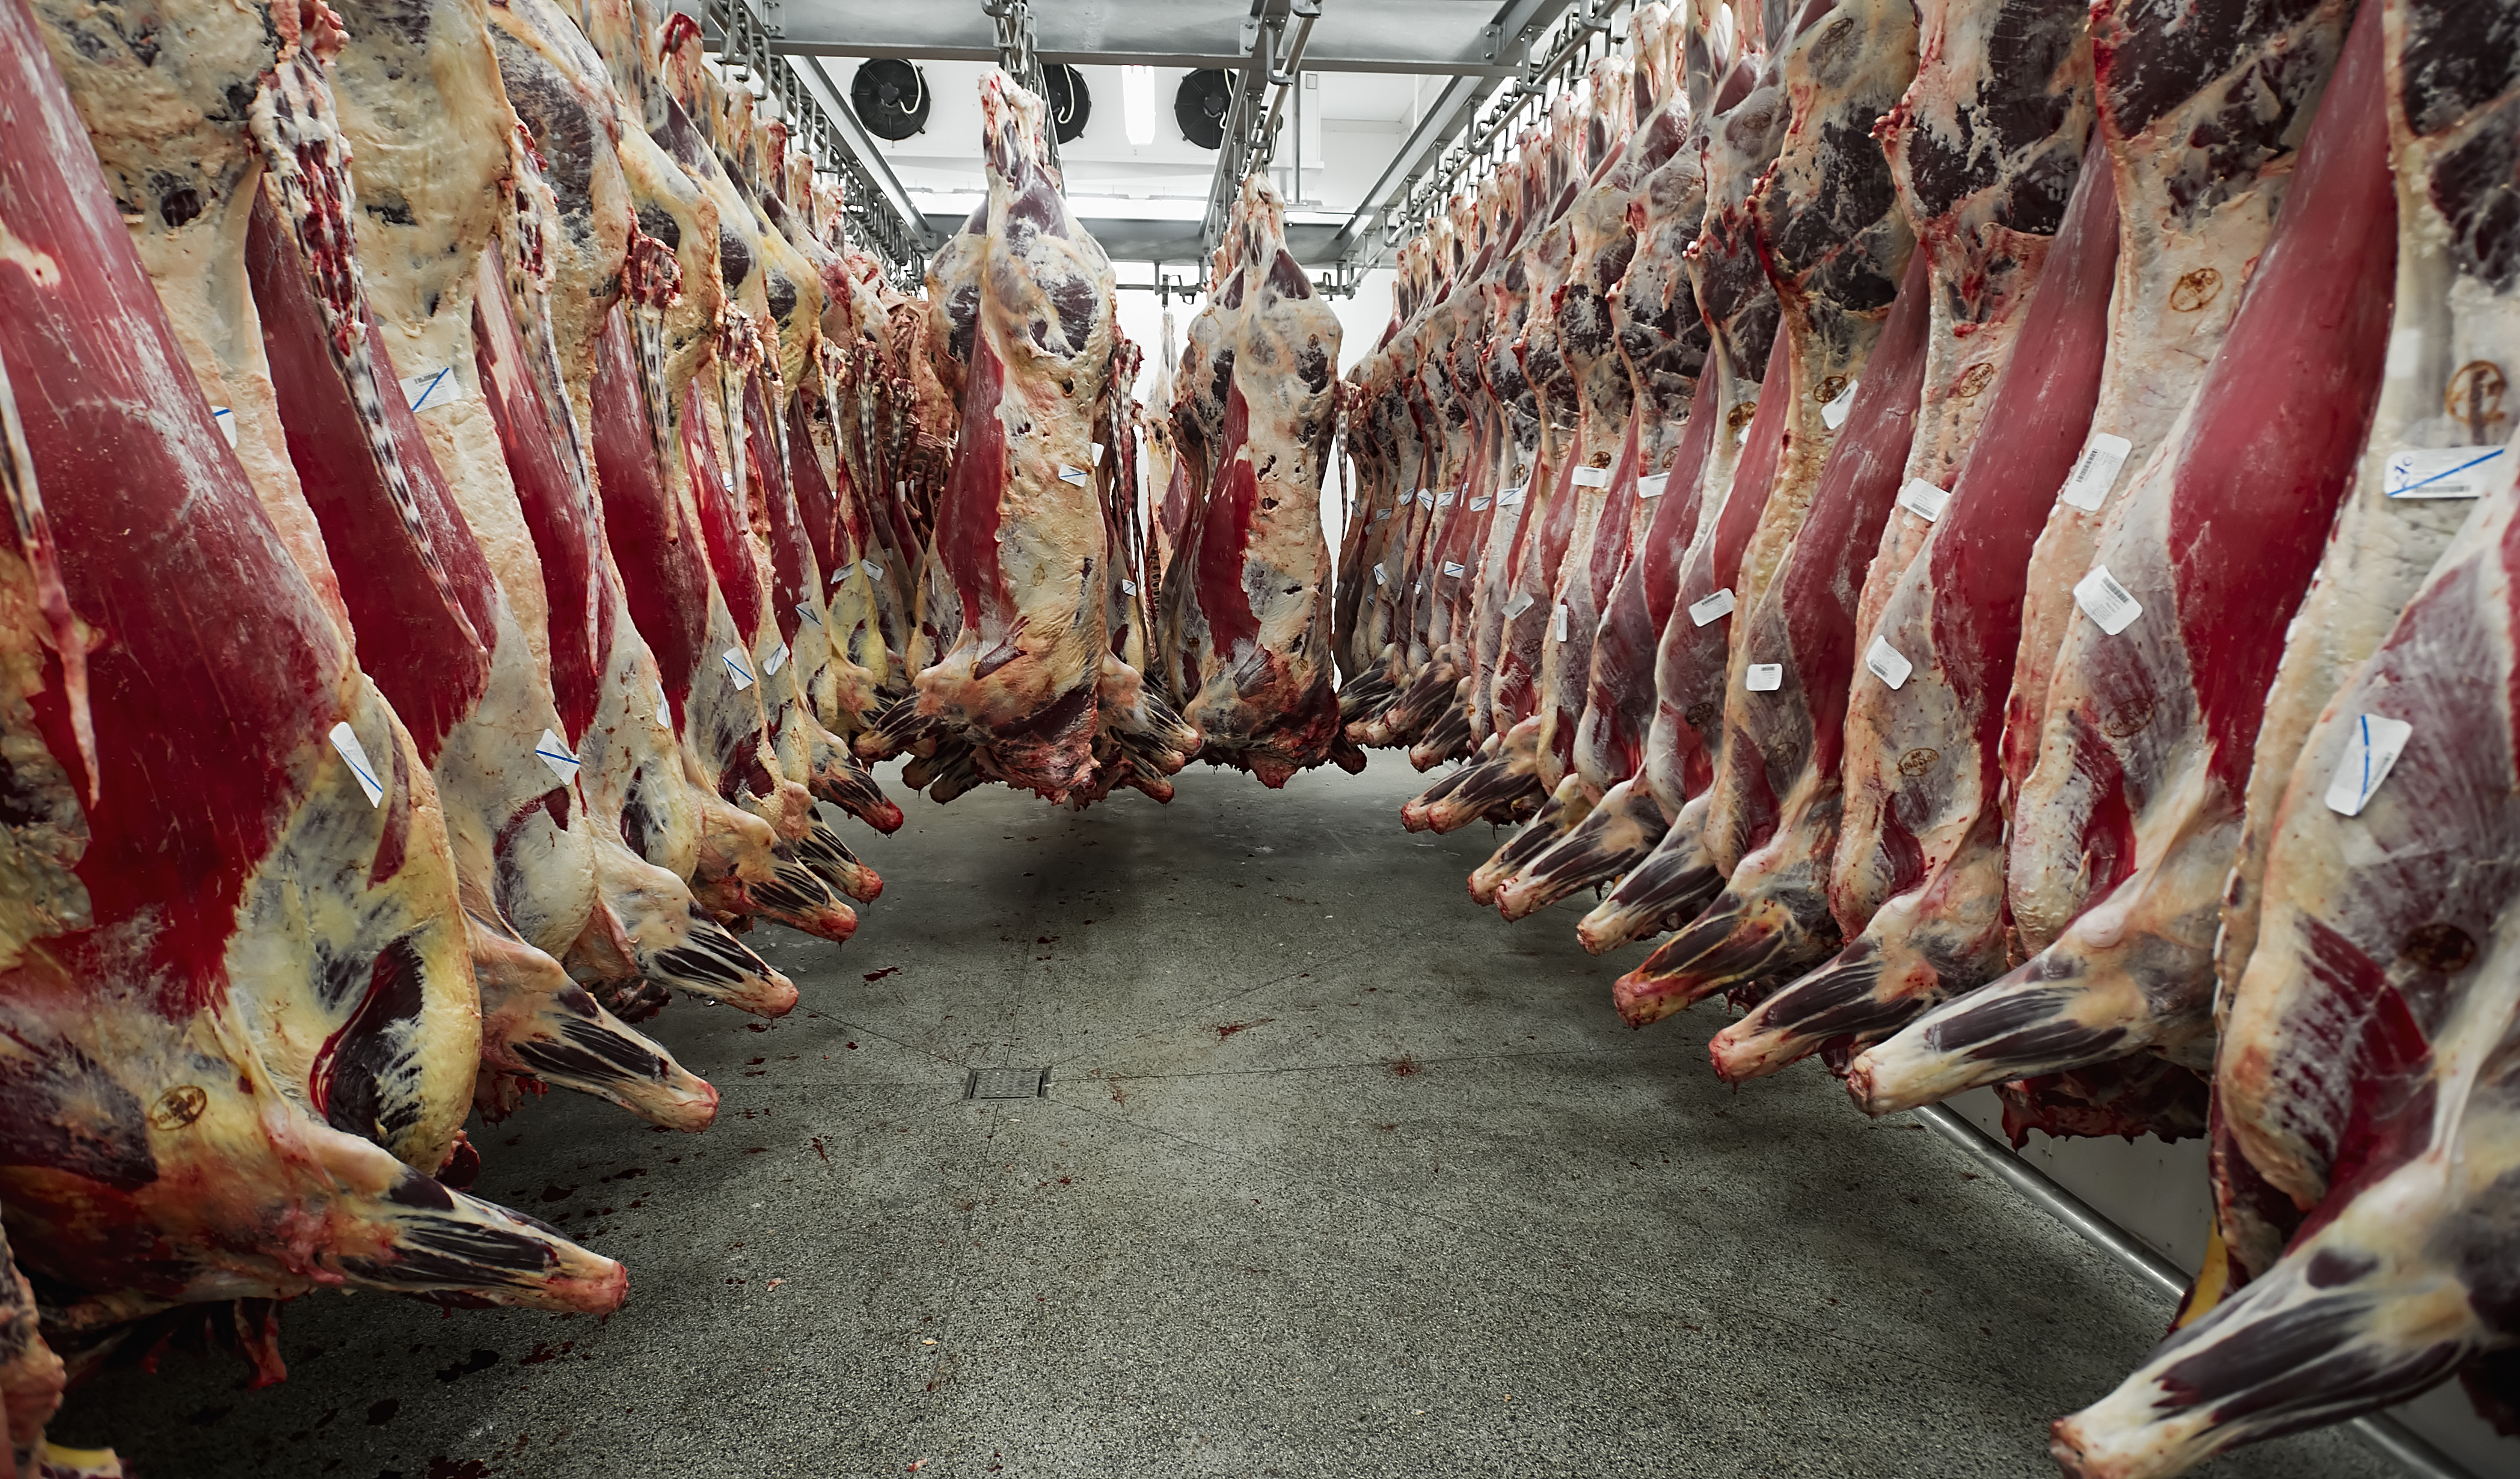 Meat carcasses - Bovine TB